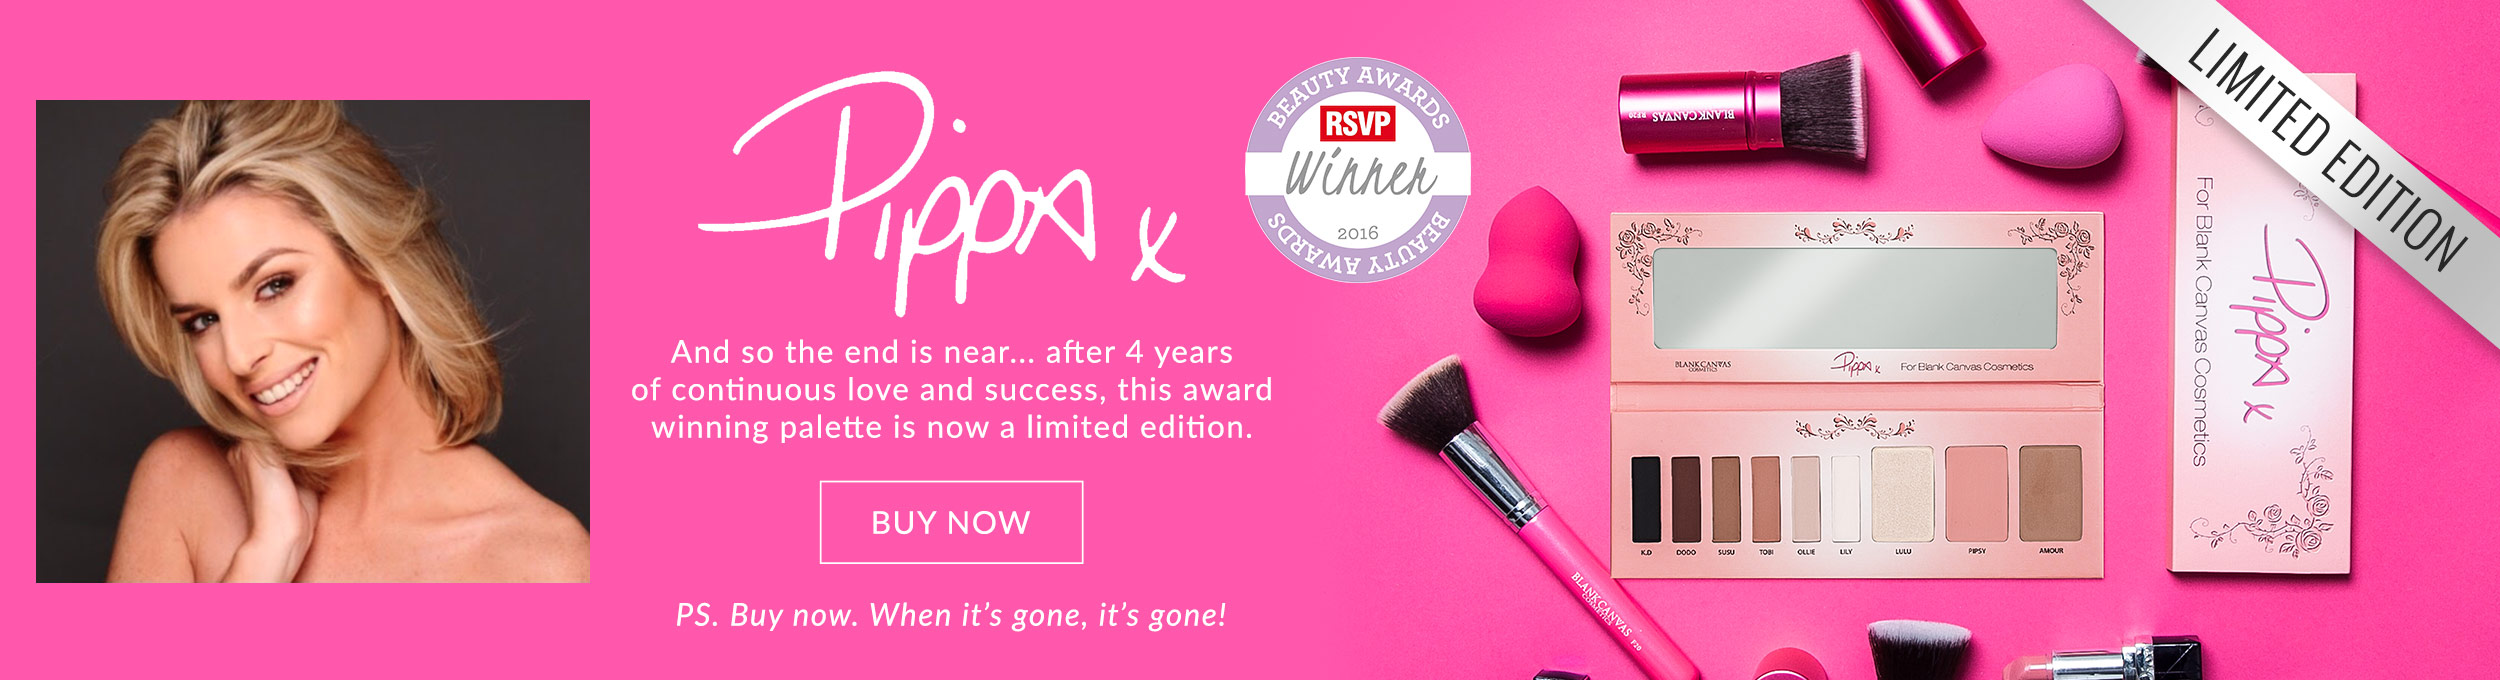 Pippa For Blank Canvas Cosmetics Palette - Limited Edition